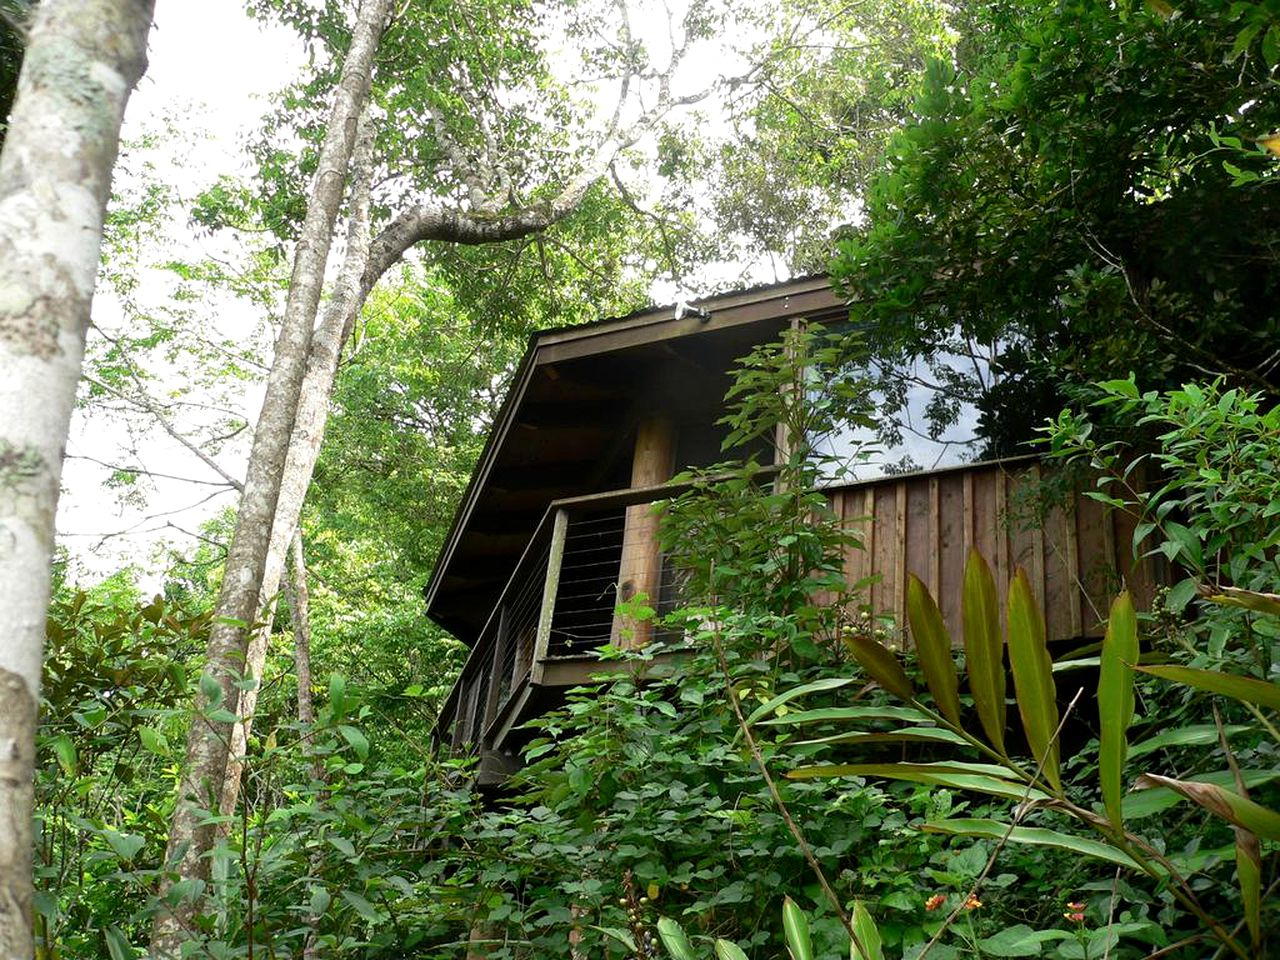 Unique self-contained accommodation for tree house glamping, QLD